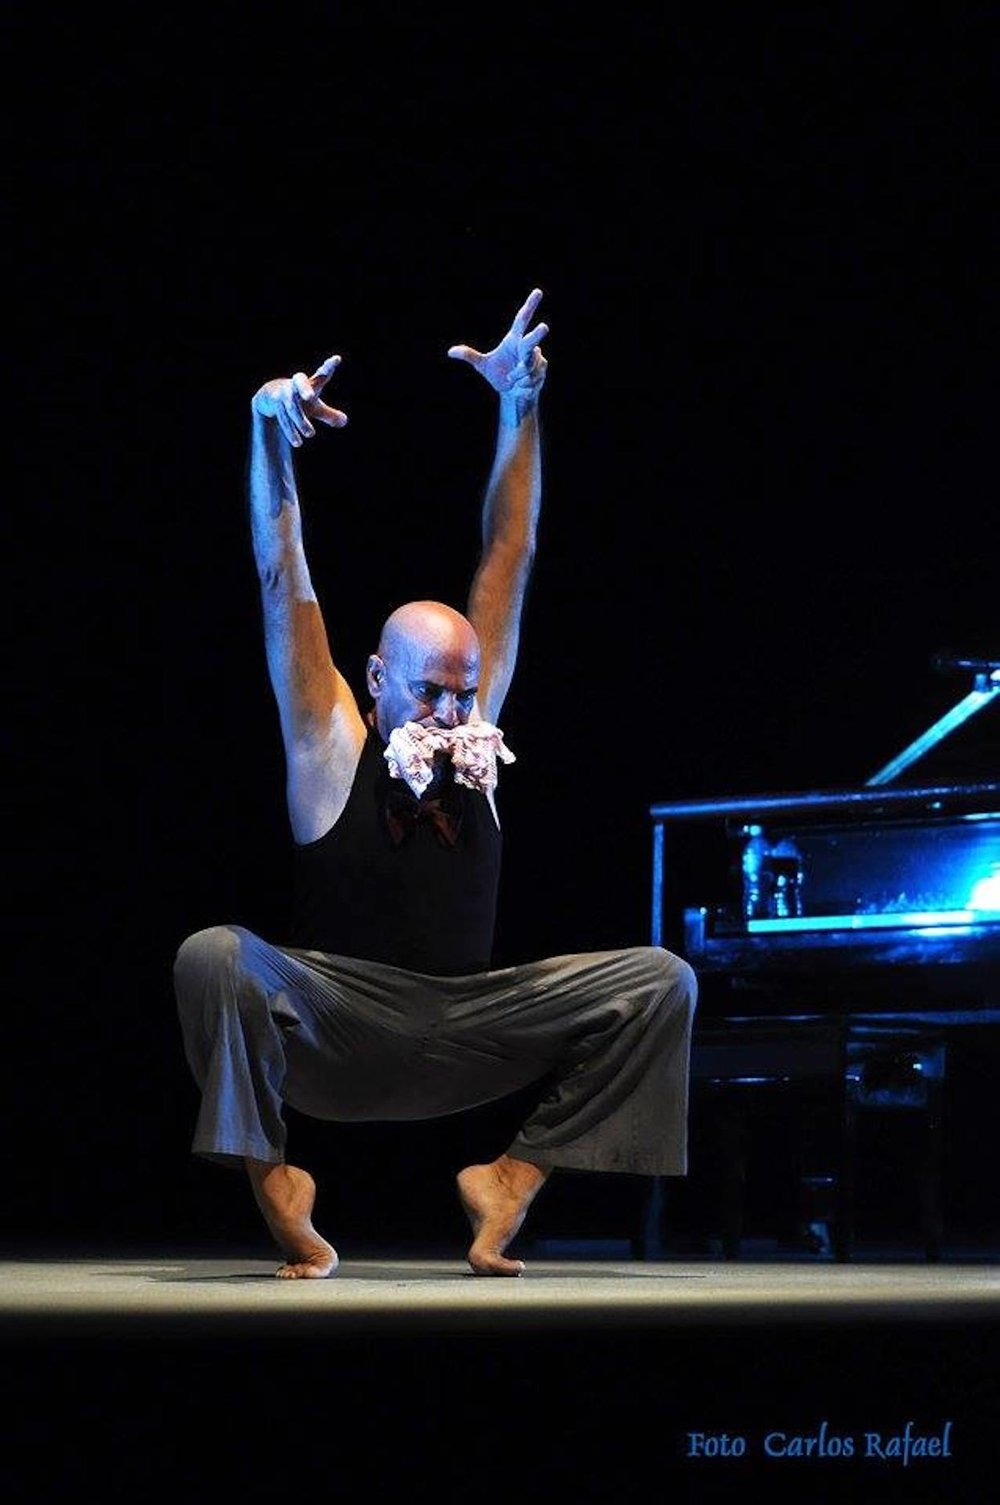 http://vabas.online/ Guillermo Luis Horta - Artist   Meister der Improvisation. Tänzer, Maler, Vocalist, Choreograph, he works with a deep interest in body and voice. Hedeveloped Vabas, a training to synchronizebreath and voice with body and movement.